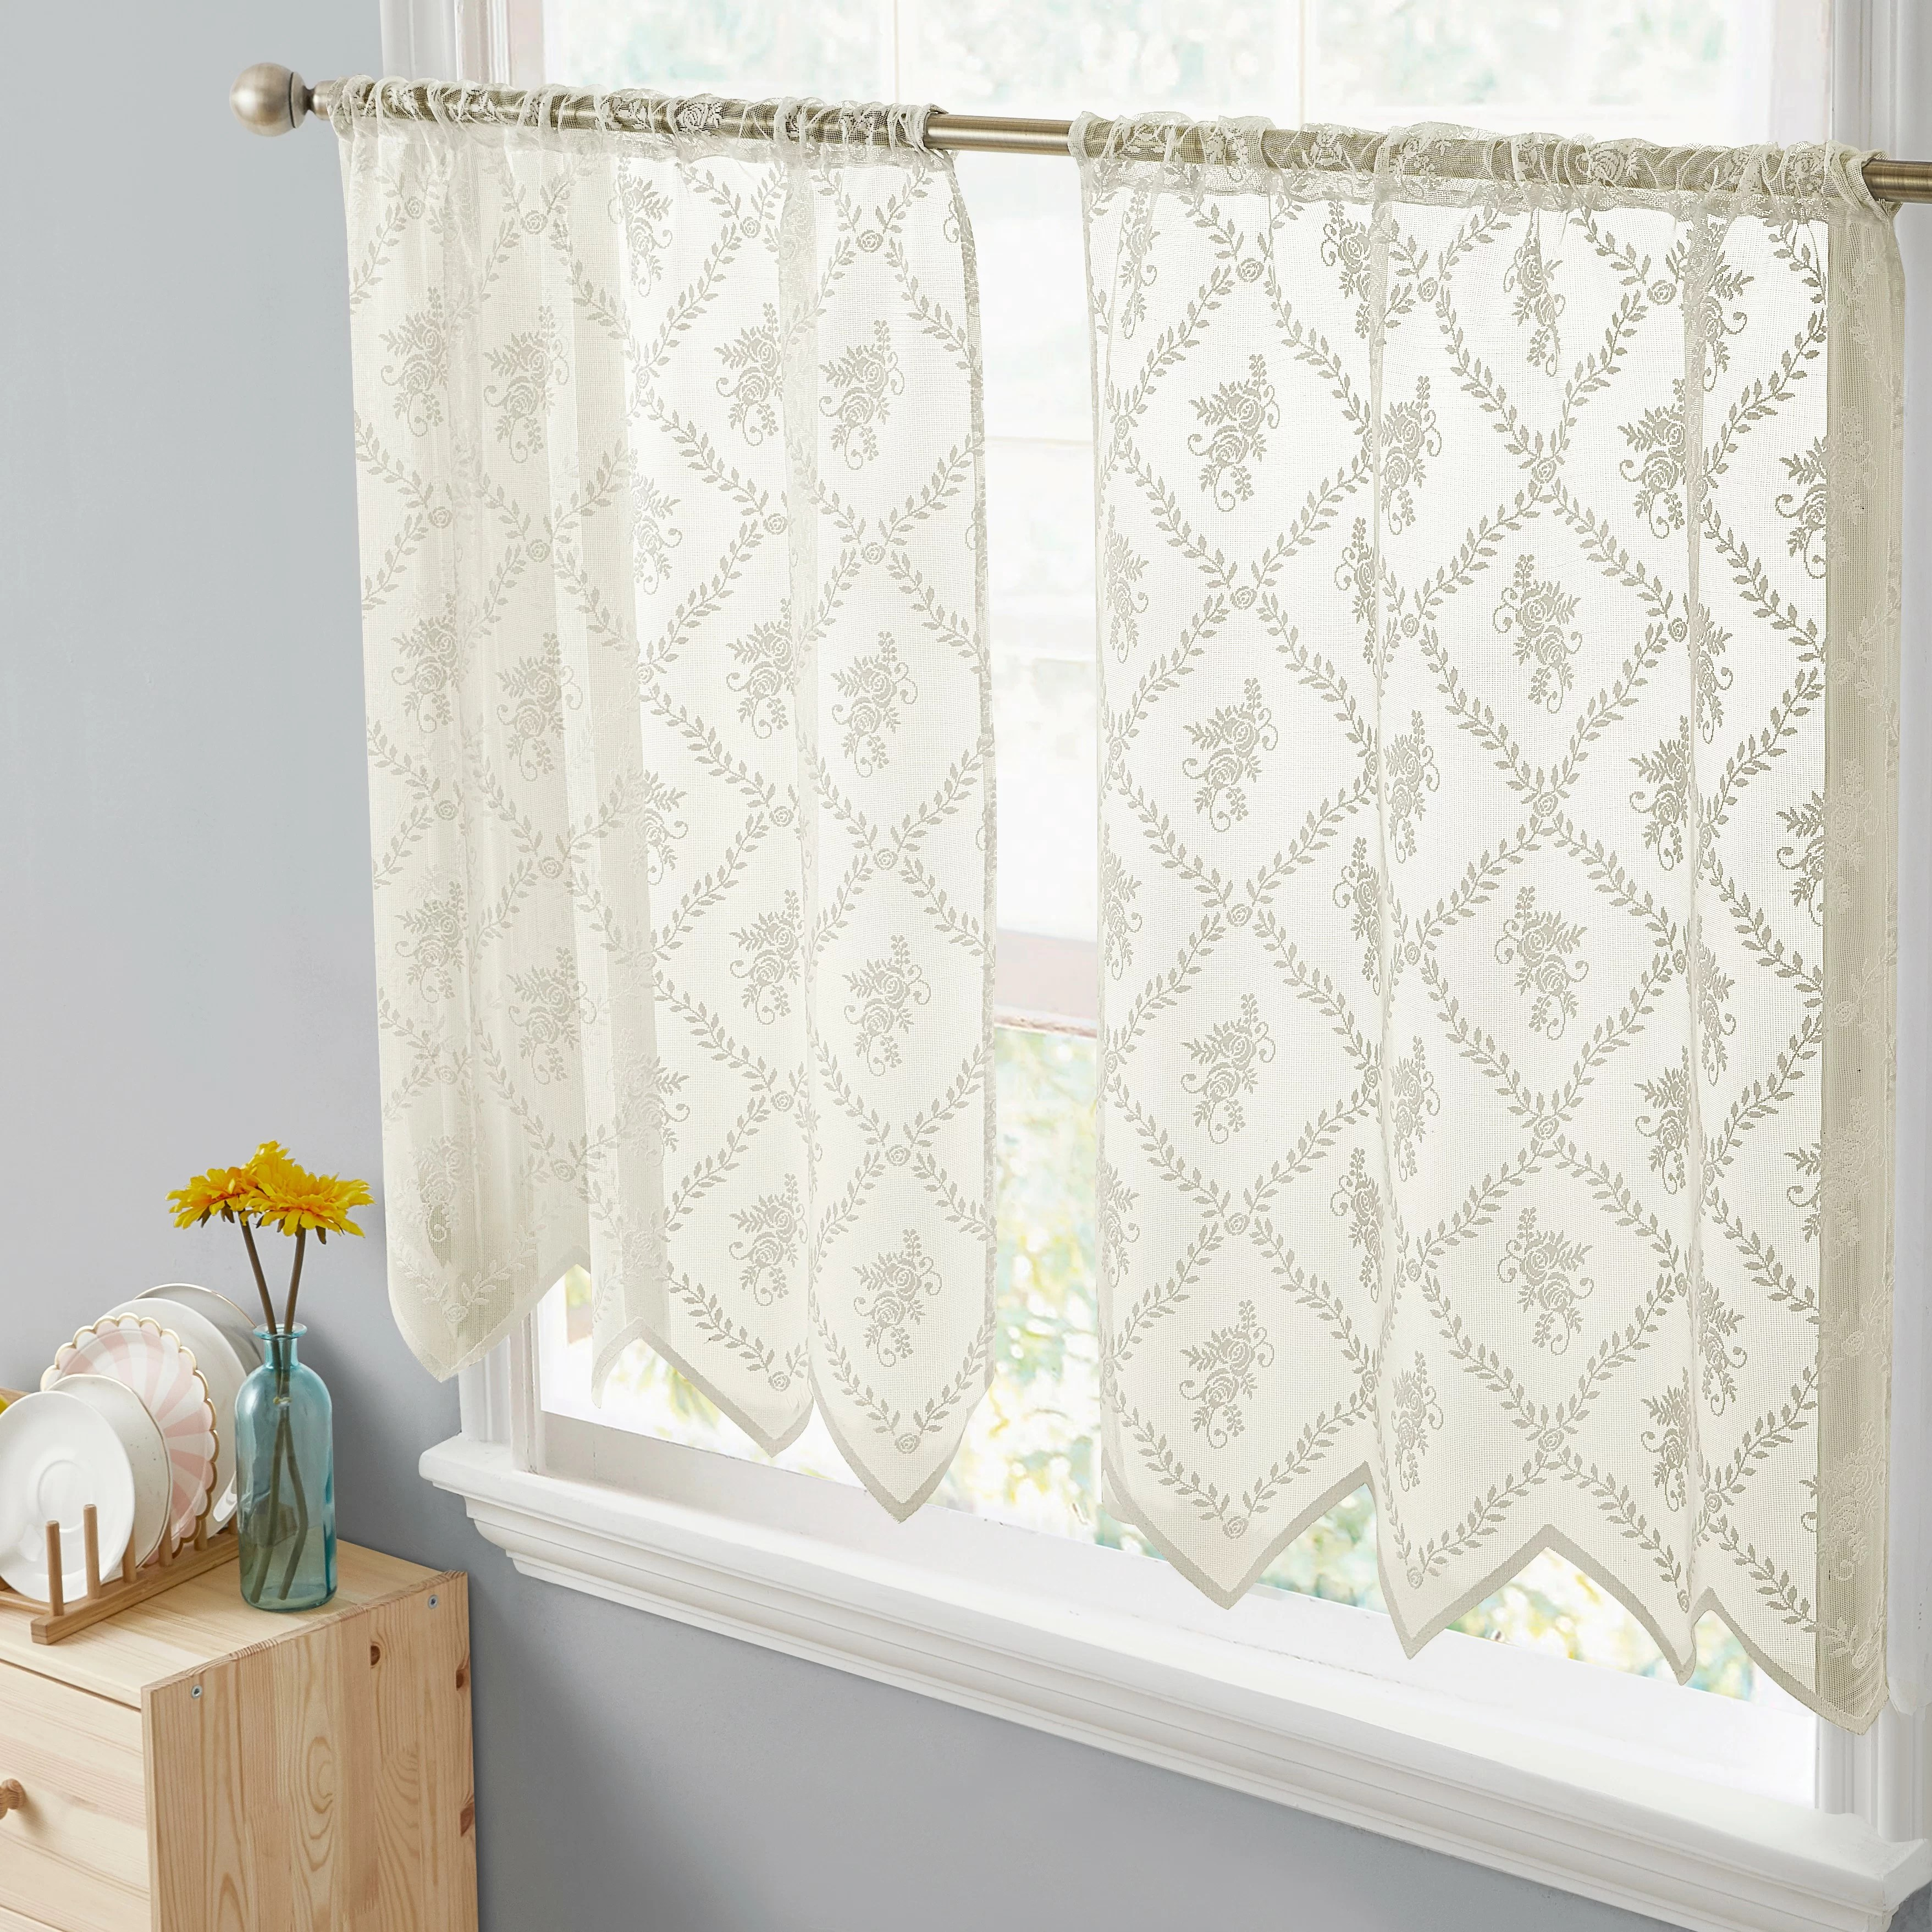 August Grove Adrik Isabella Floral Lace Sheer Rod Pocket Tiers Kitchen Curtain Reviews